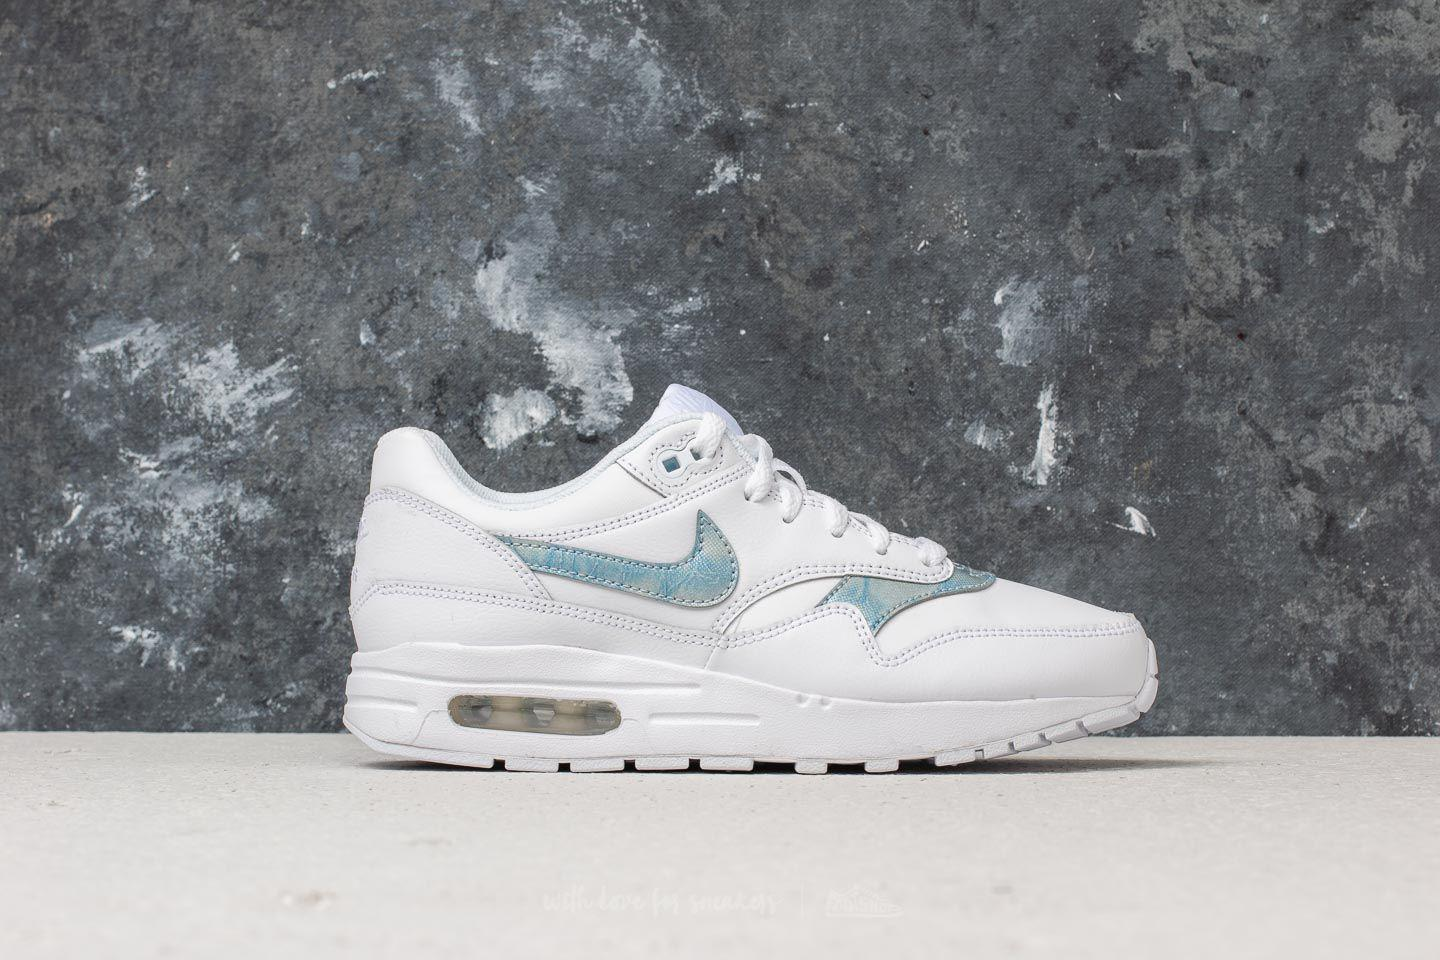 new arrival 855d8 fc851 Nike Air Max 1 (gs) White  Royal Tint-white in White - Lyst